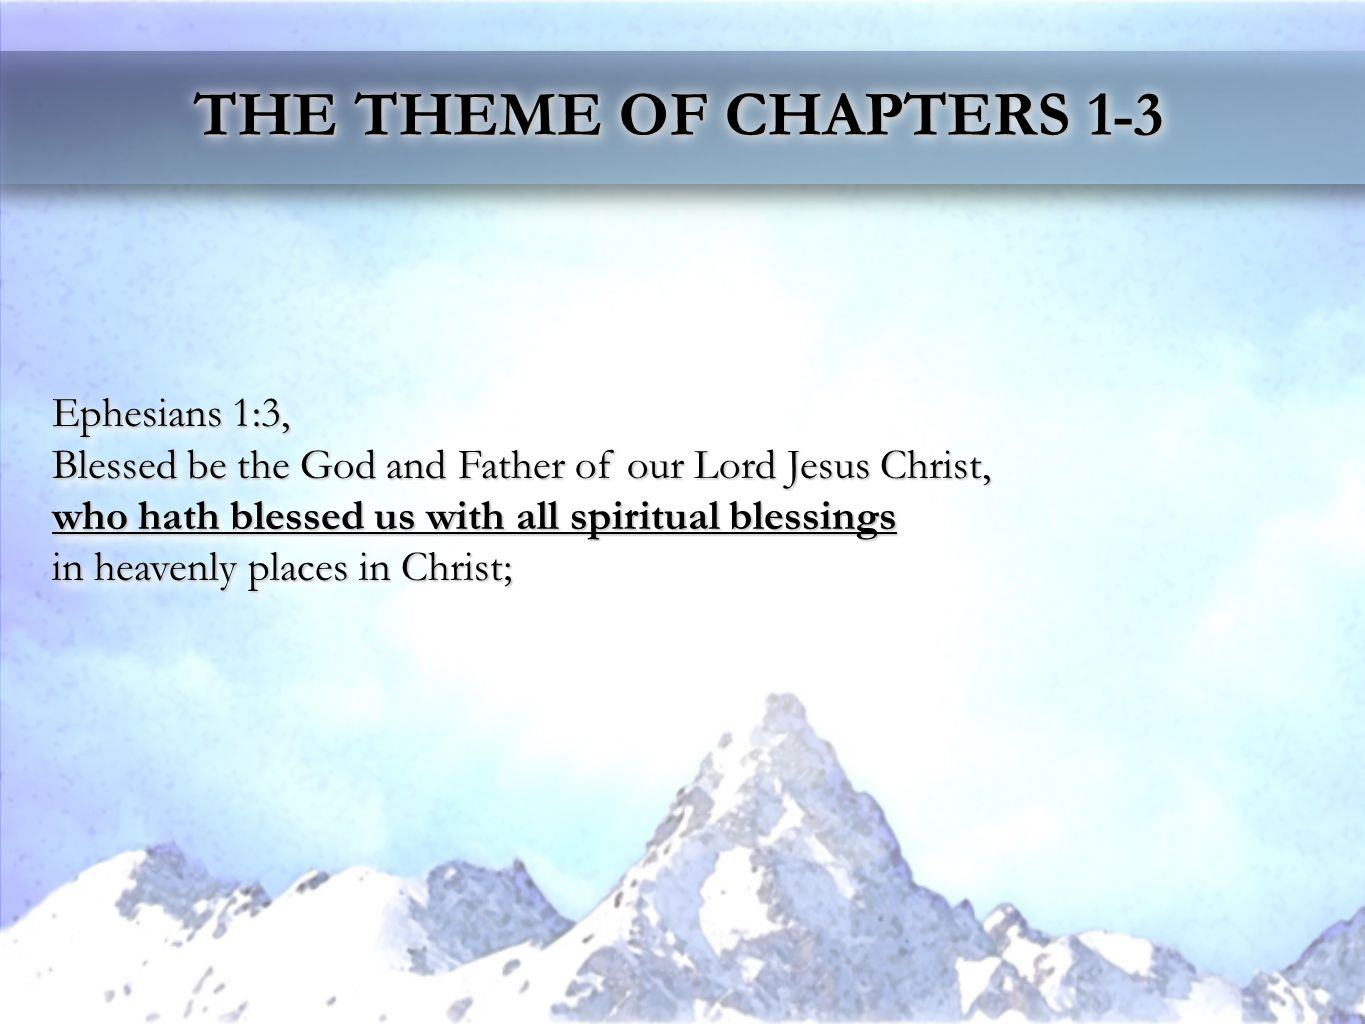 THE THEME OF CHAPTERS 1-3 Ephesians 1:3, Blessed be the God and Father of our Lord Jesus Christ, who hath blessed us with all spiritual blessings in heavenly places in Christ; Ephesians 1:3, Blessed be the God and Father of our Lord Jesus Christ, who hath blessed us with all spiritual blessings in heavenly places in Christ;